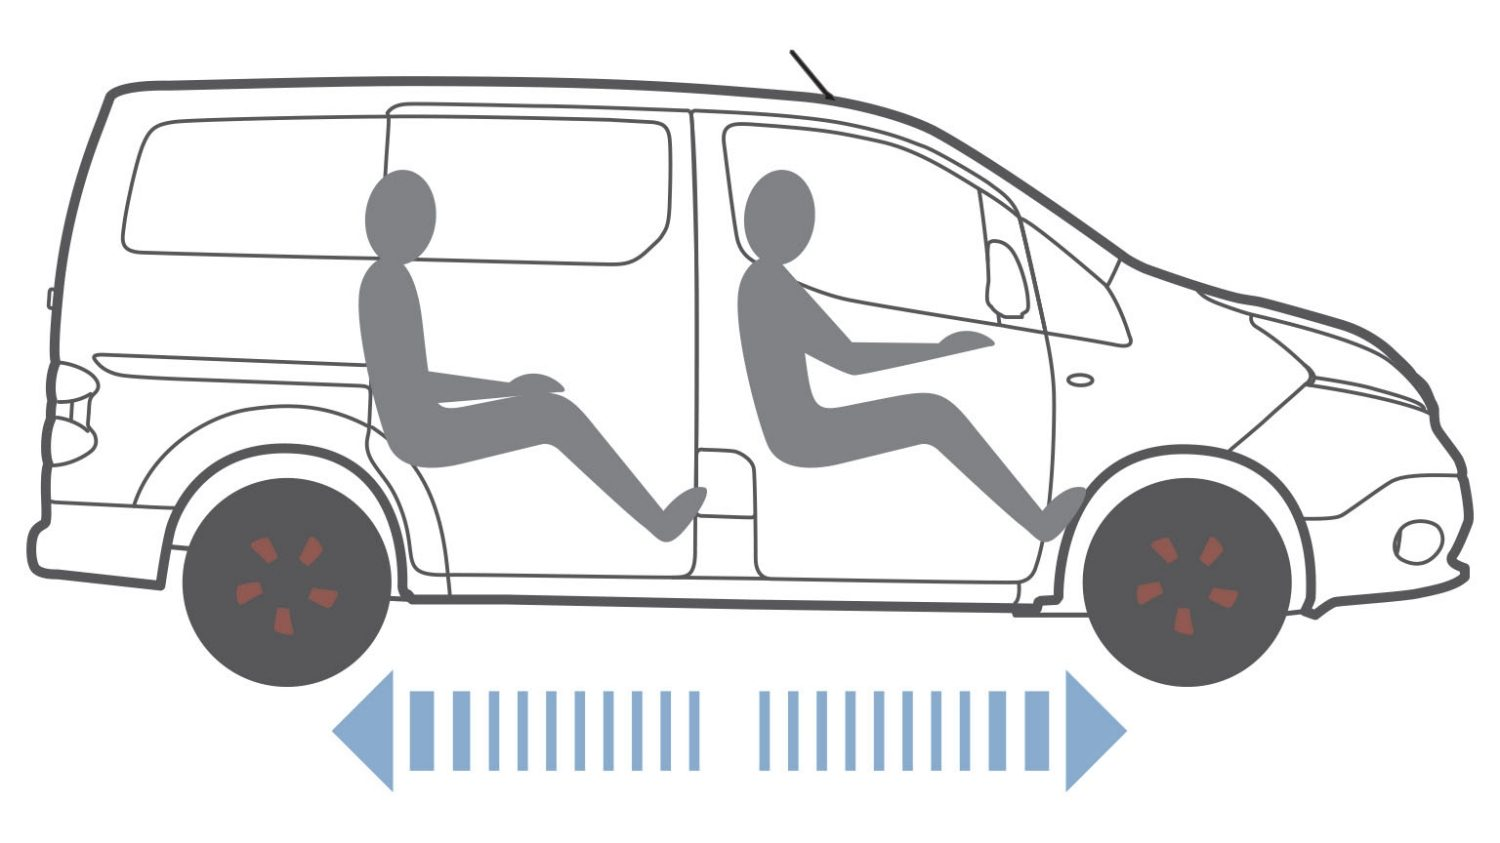 Van | Nissan e-NV200 | Anti-lock braking system